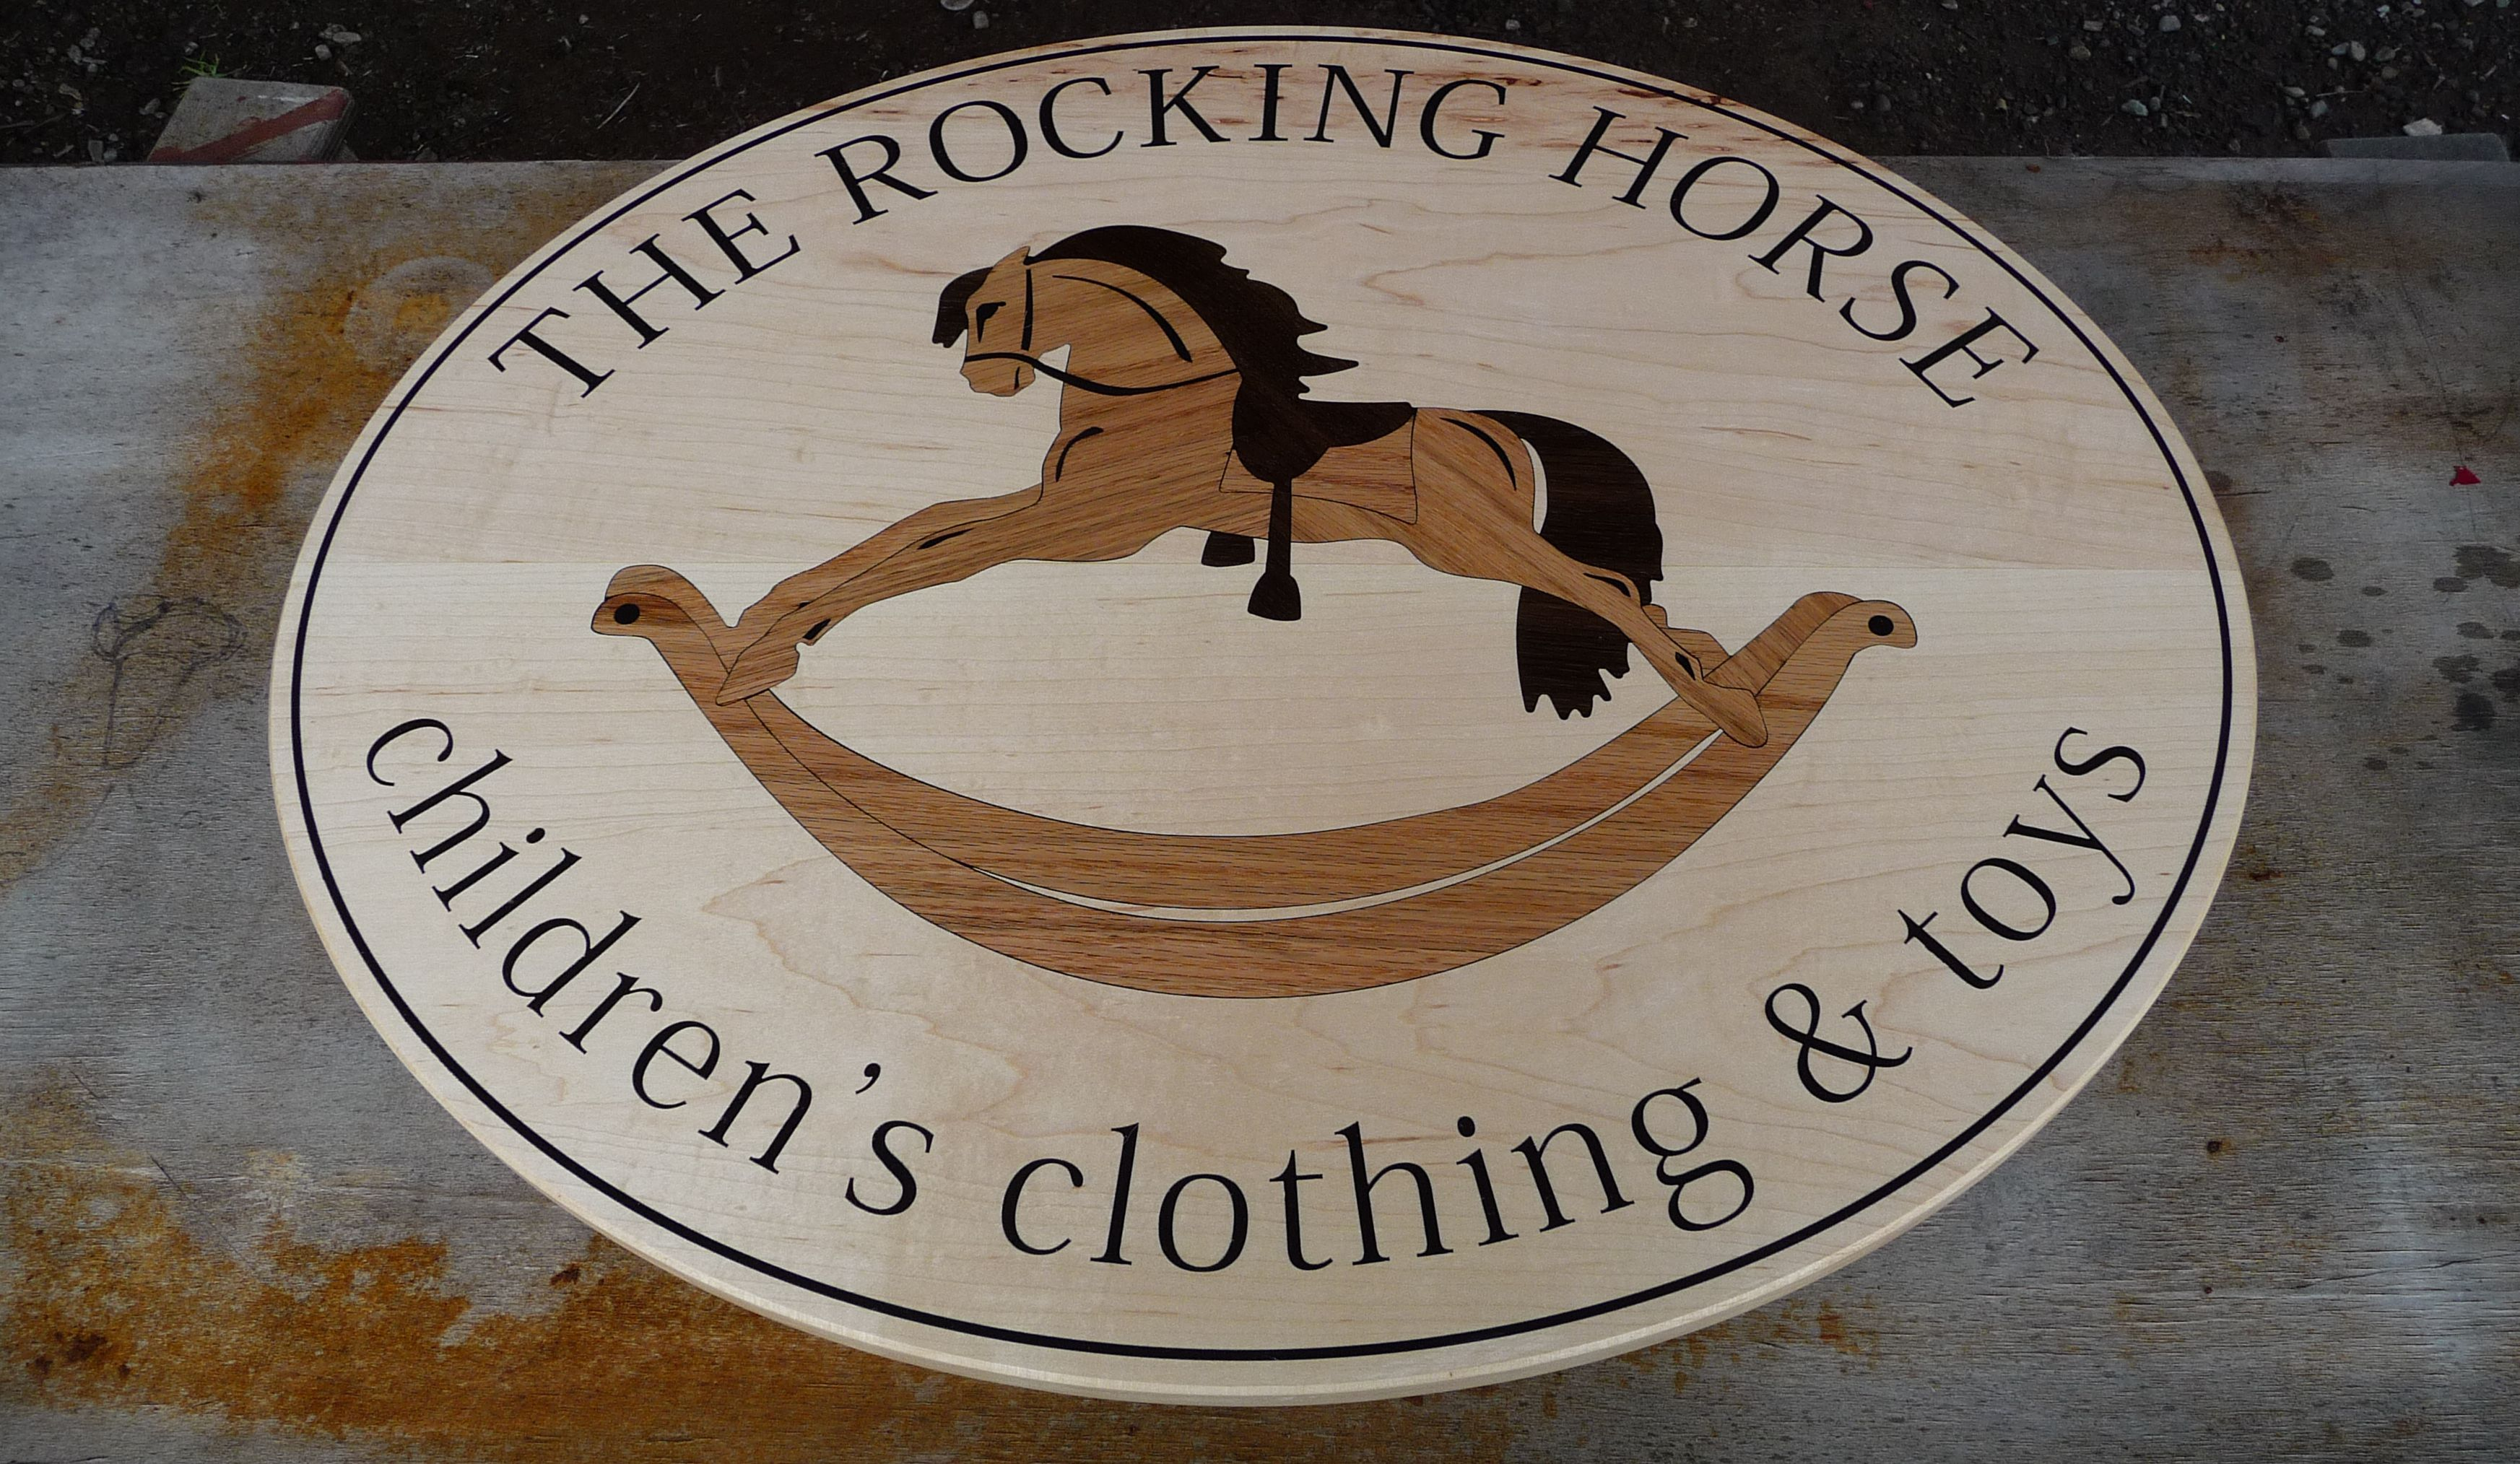 WoodLab Designs the Rocking Horse Wood Inlay signage